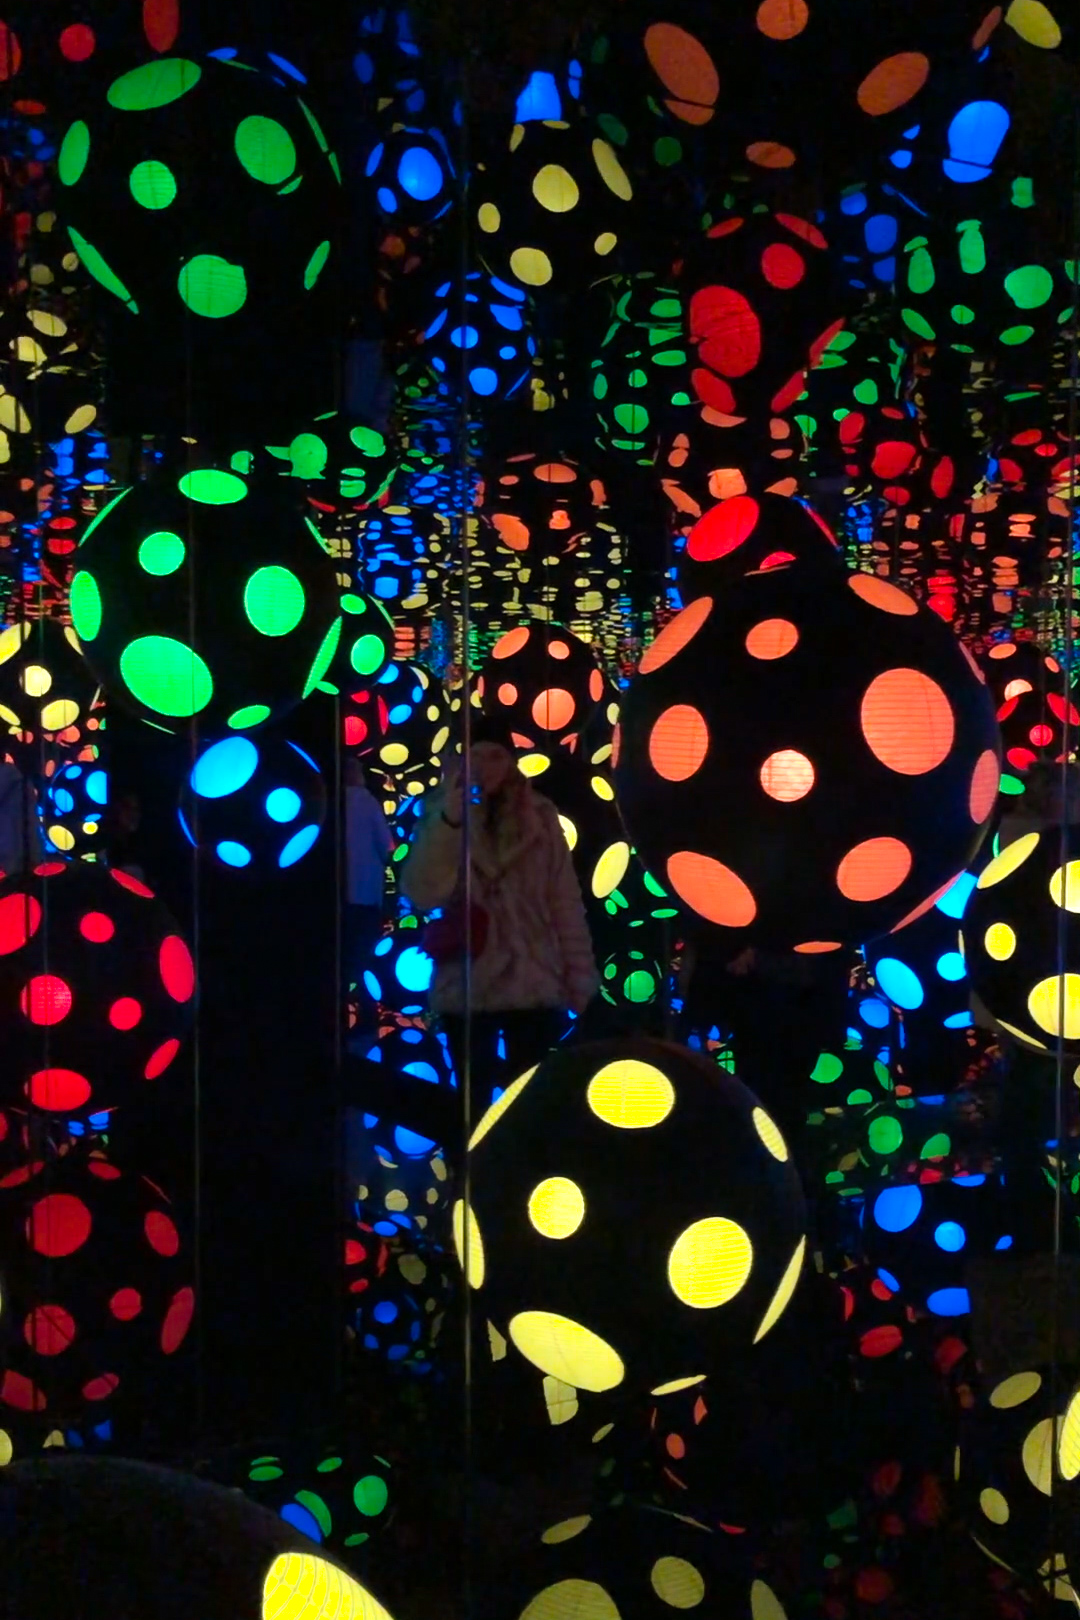 Yayoi Kusama Infinity Room London - The LDN Diaries London Lifestyle Blog